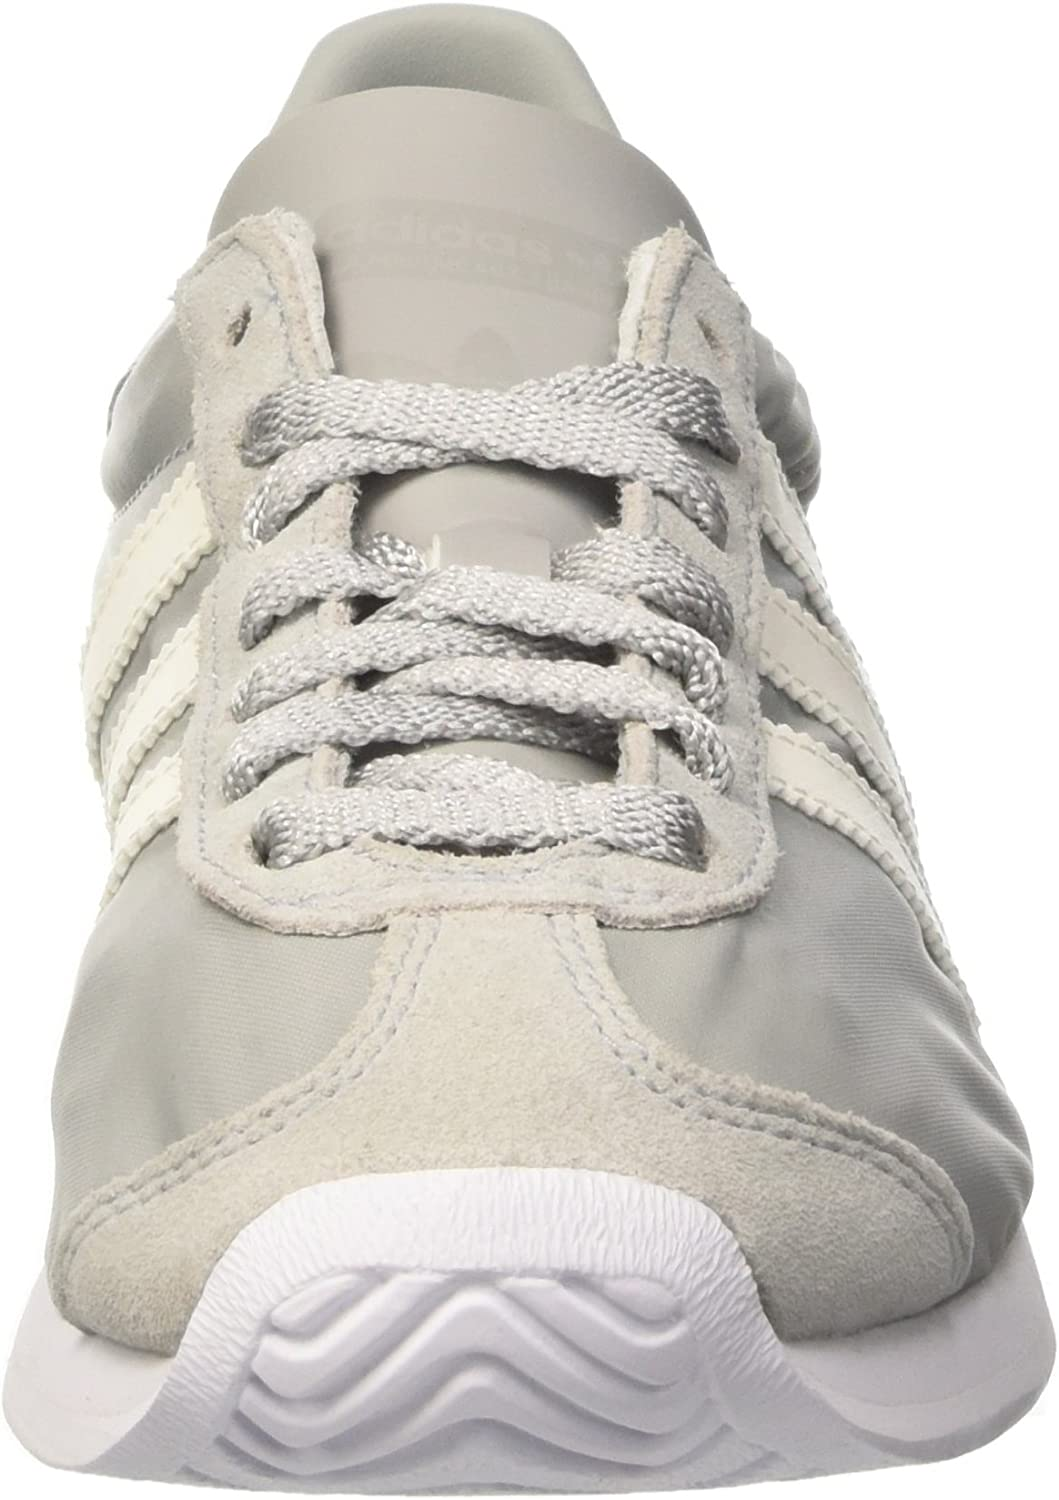 adidas Damen Country Og Sneakers Grau (Clear Onix/Off White/Ftwr White)